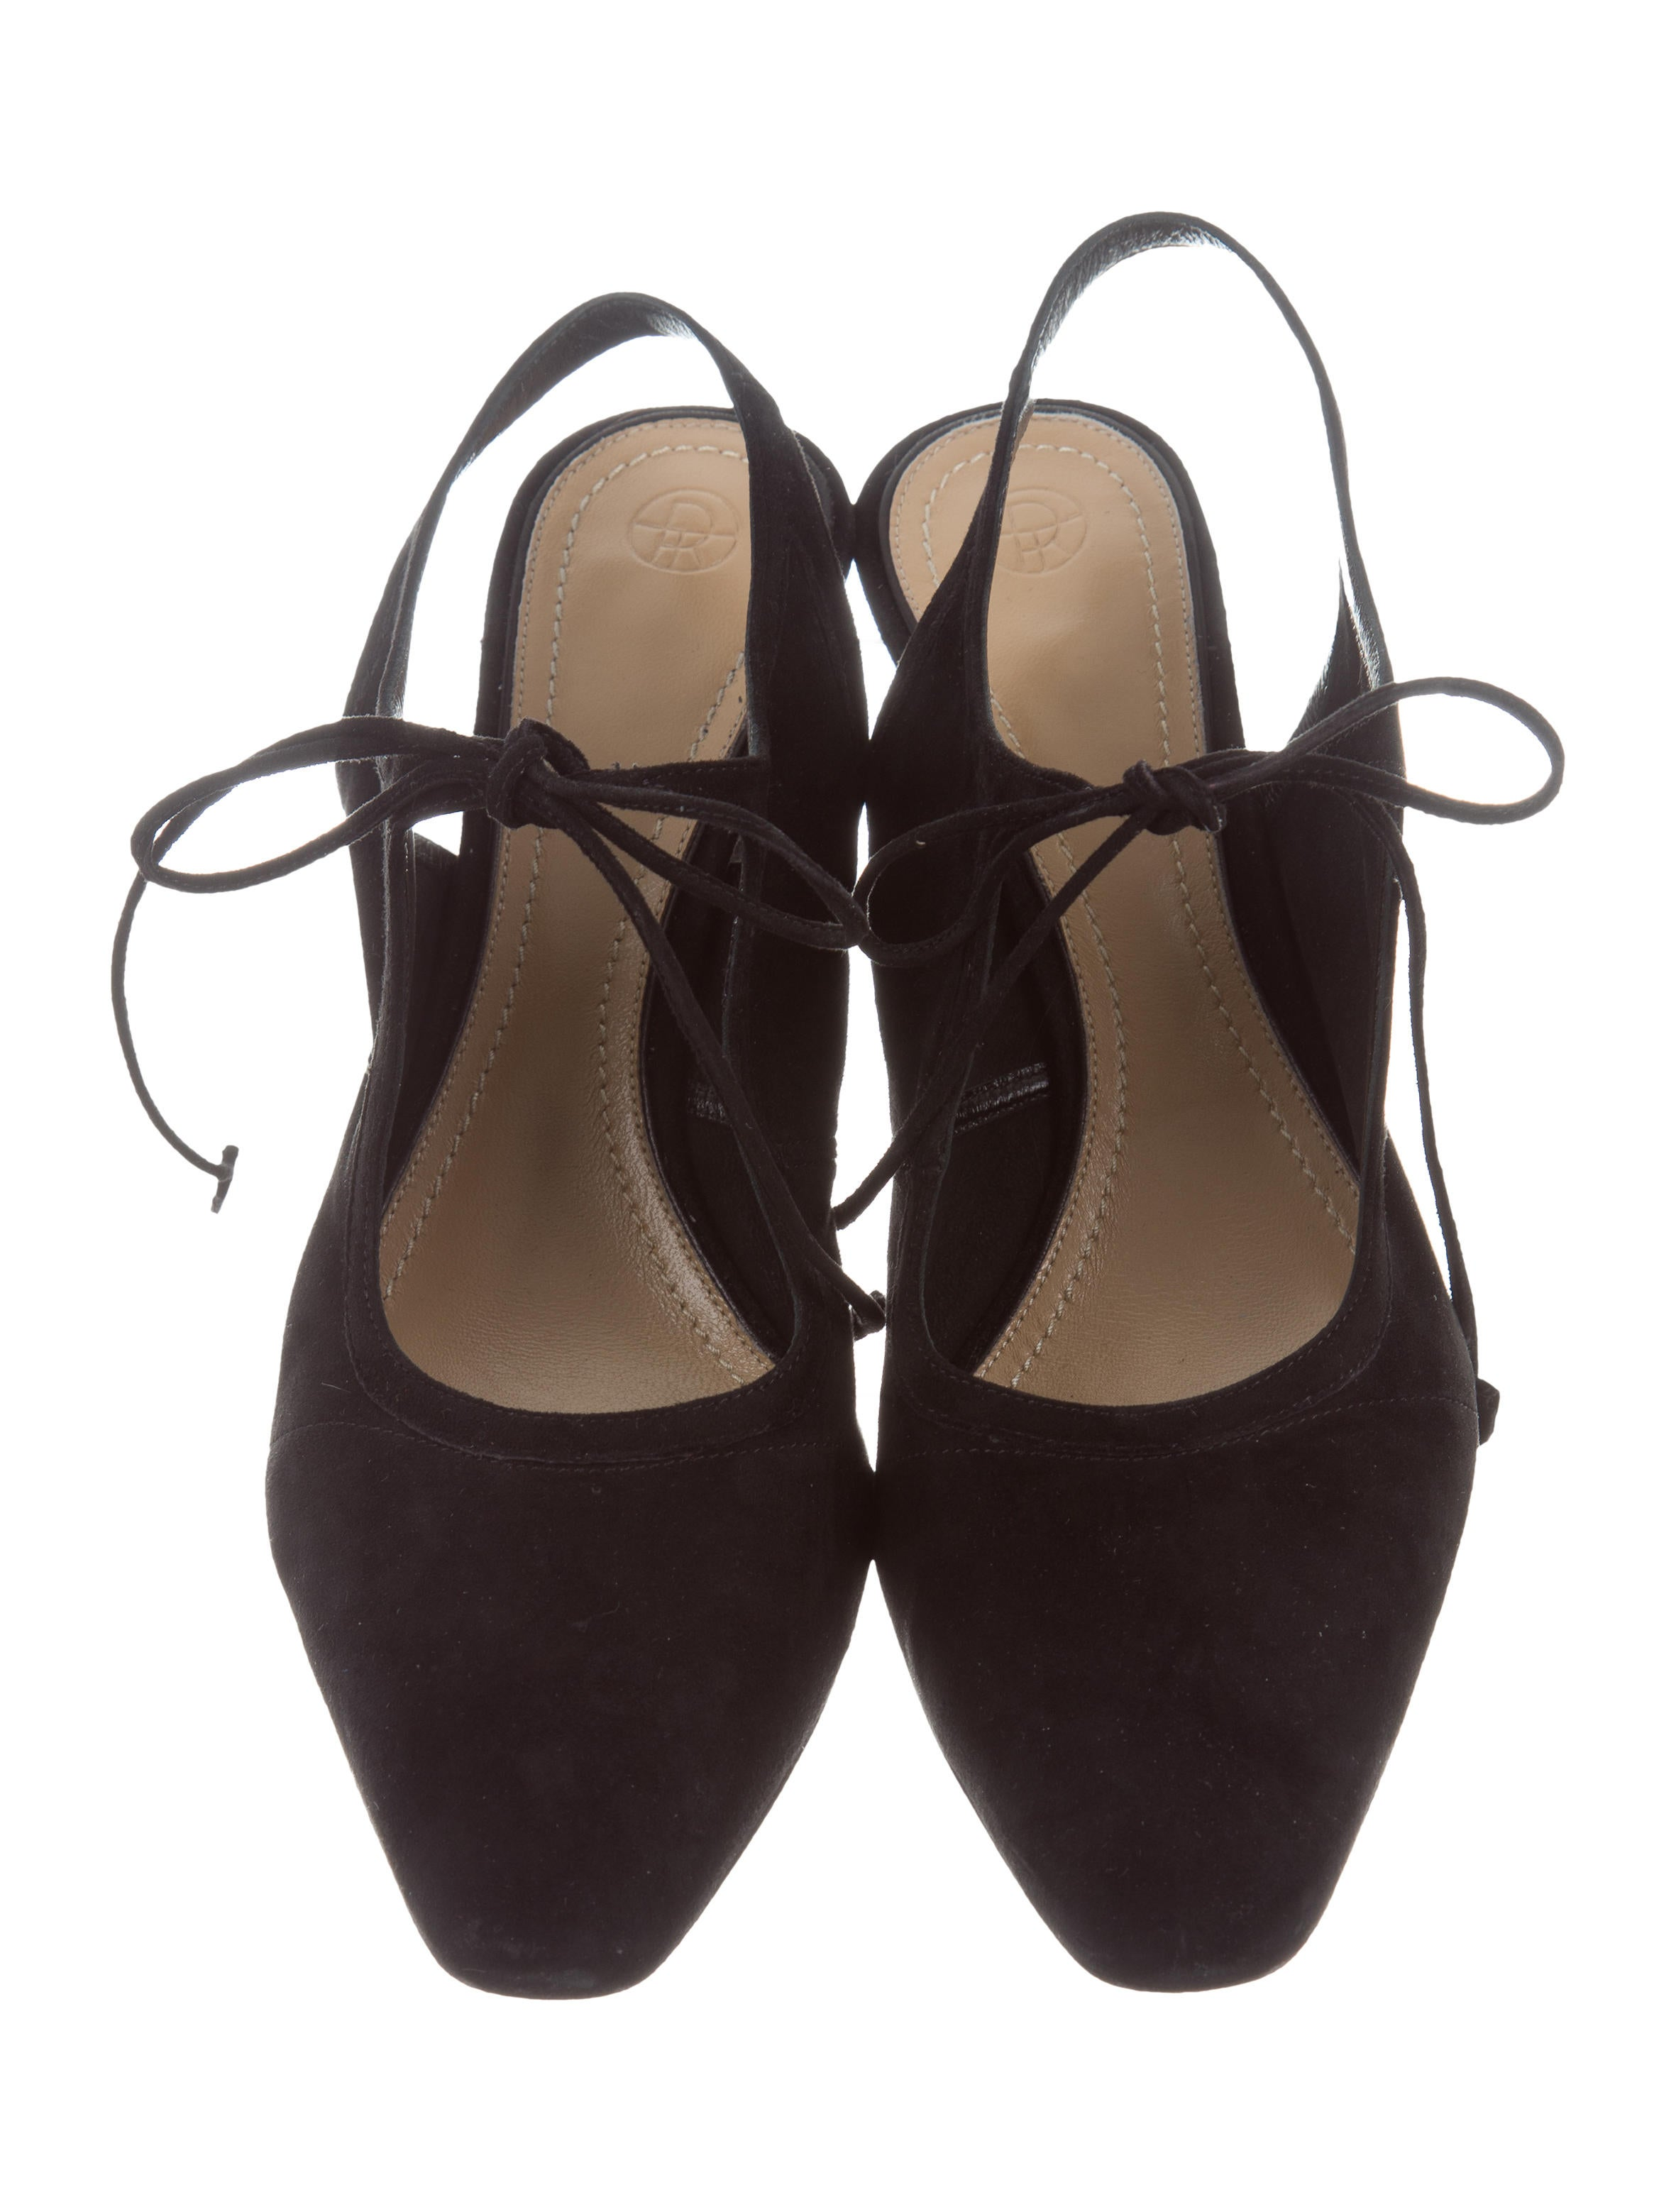 86023be571d The Row 2017 Camil Suede Pumps - Shoes - THR34077